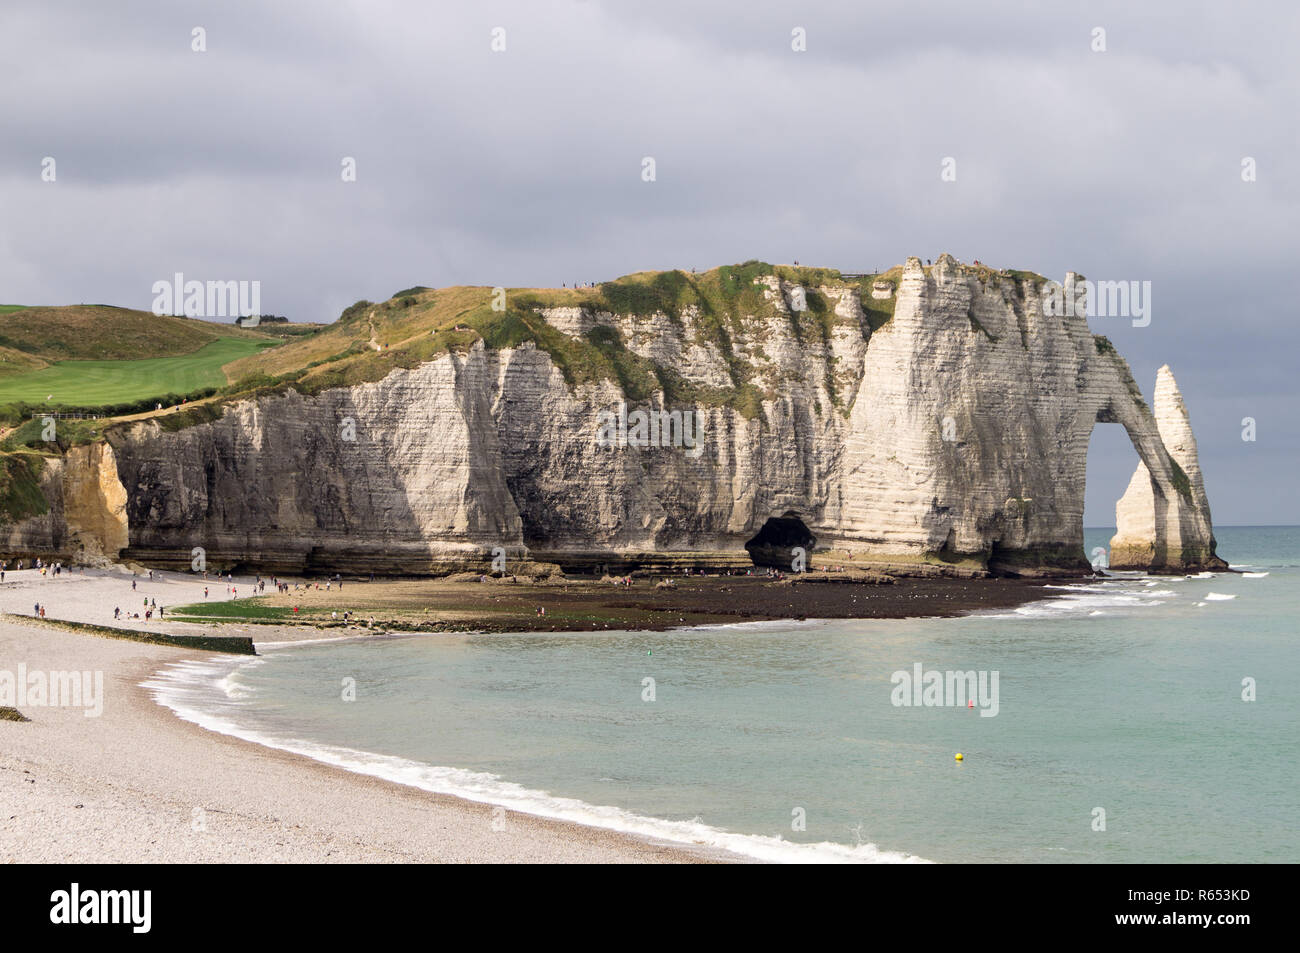 The cliffs of Etretat in Normandy - Stock Image